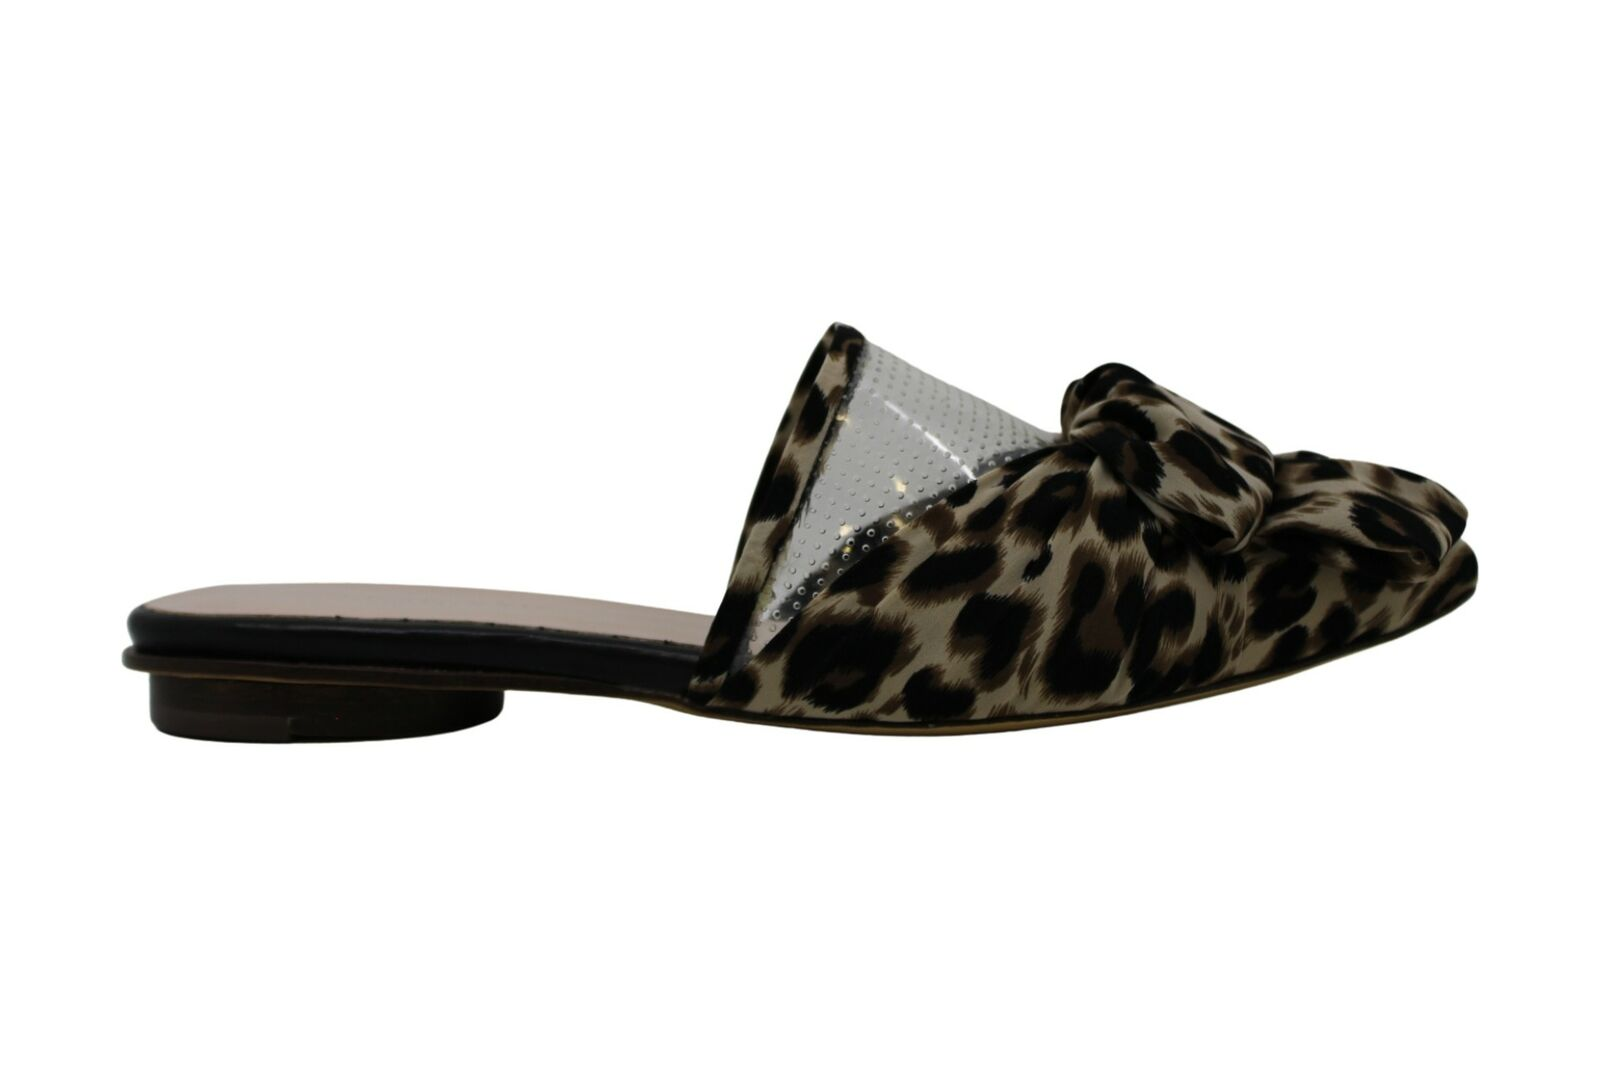 All Black Womens JUNGLE BOW Pointed Toe None Mules, MultiColor, Size 9.0 US / 7